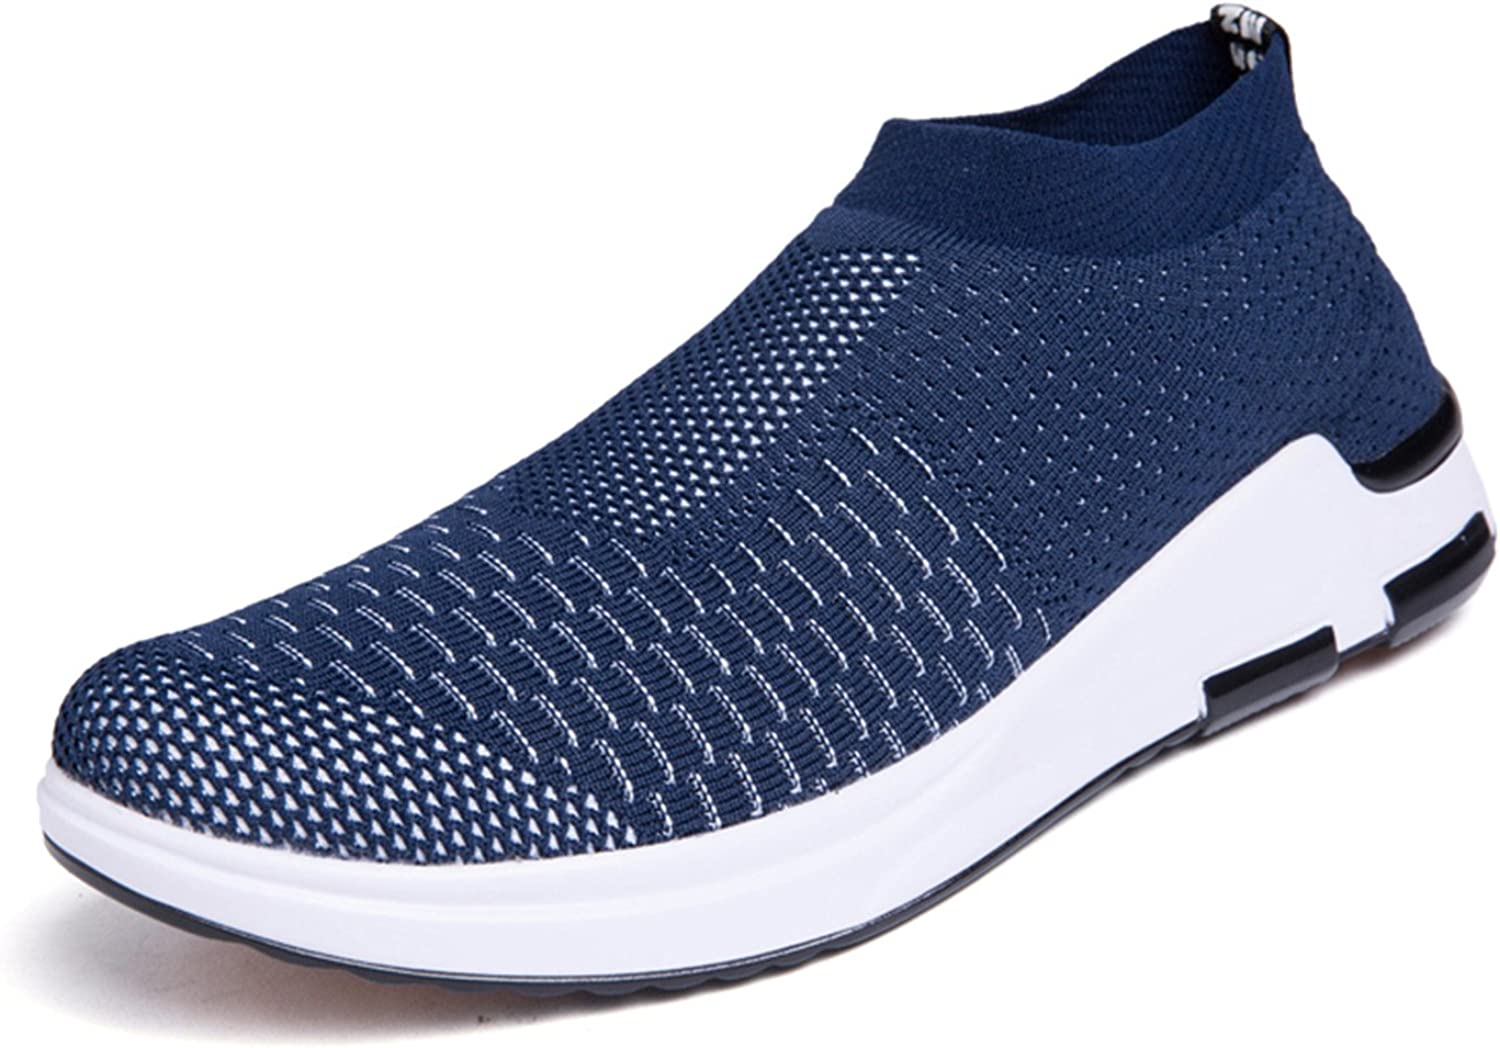 YALOX Men's Lightweight Breathable Running shoes Athletic Sneakers Fashion Casual Walking Slip On shoes